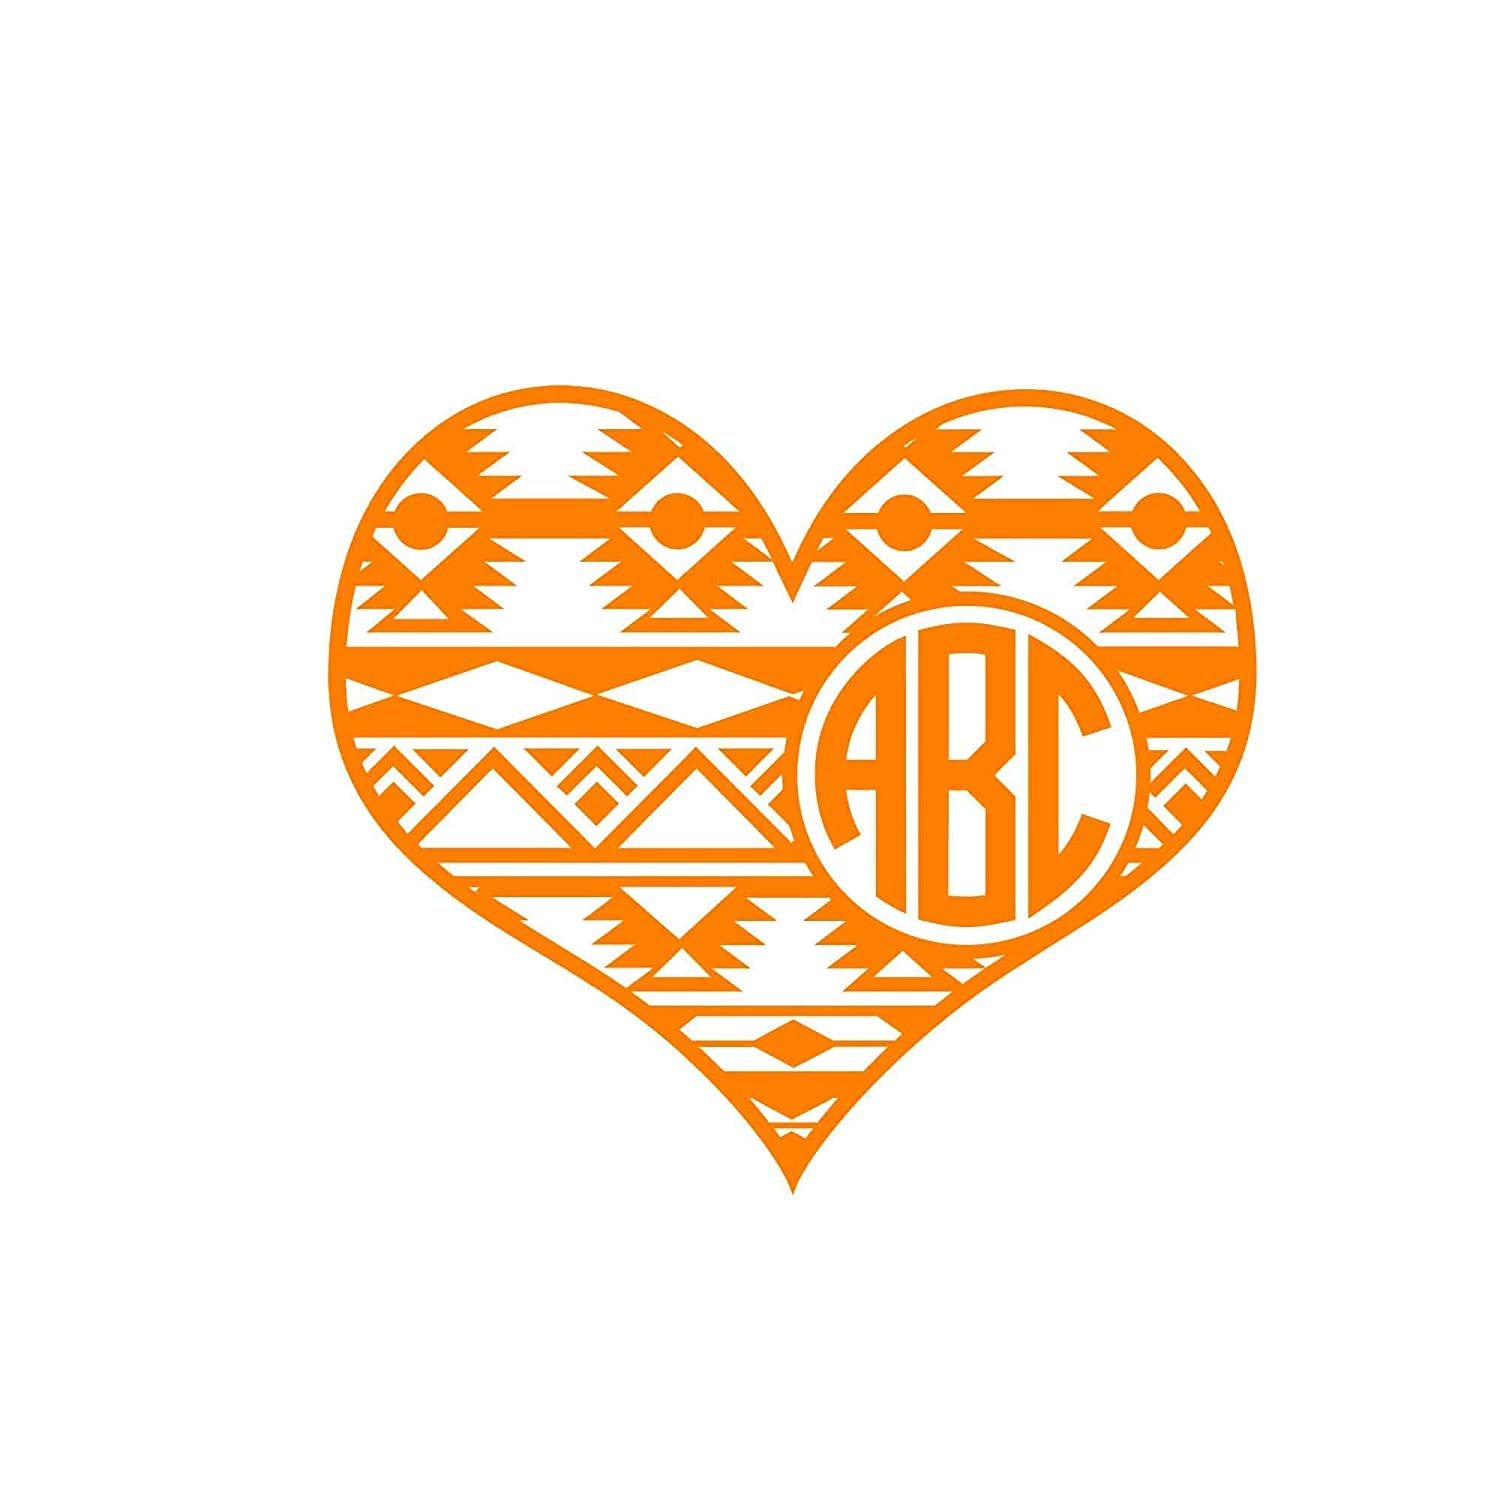 Personalized Monogram Heart Decal Initials Sticker Sales Monogrammed New York Mall